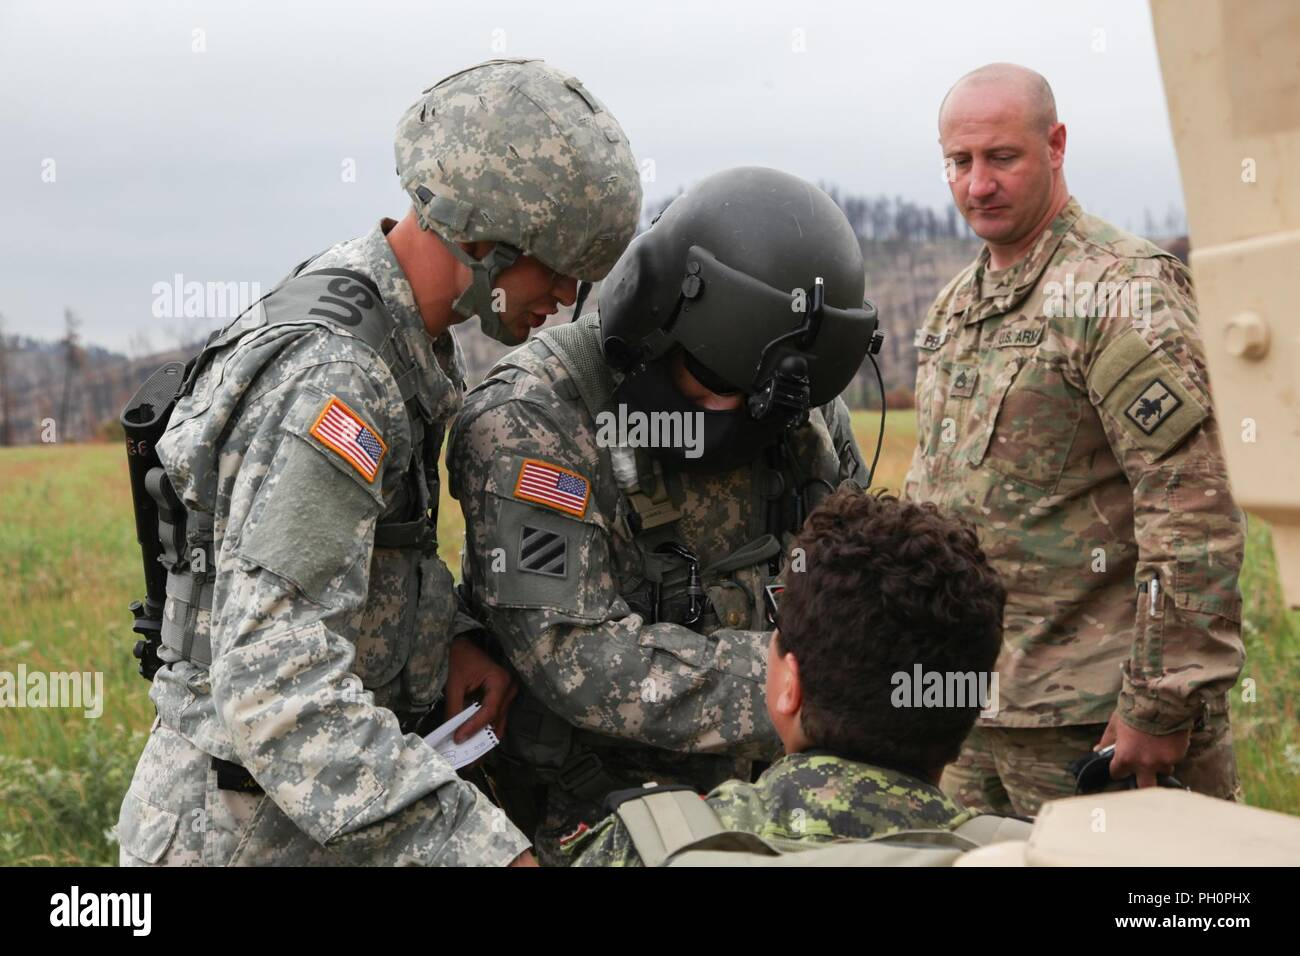 U S  Soldiers with the Army National Guard, assess a